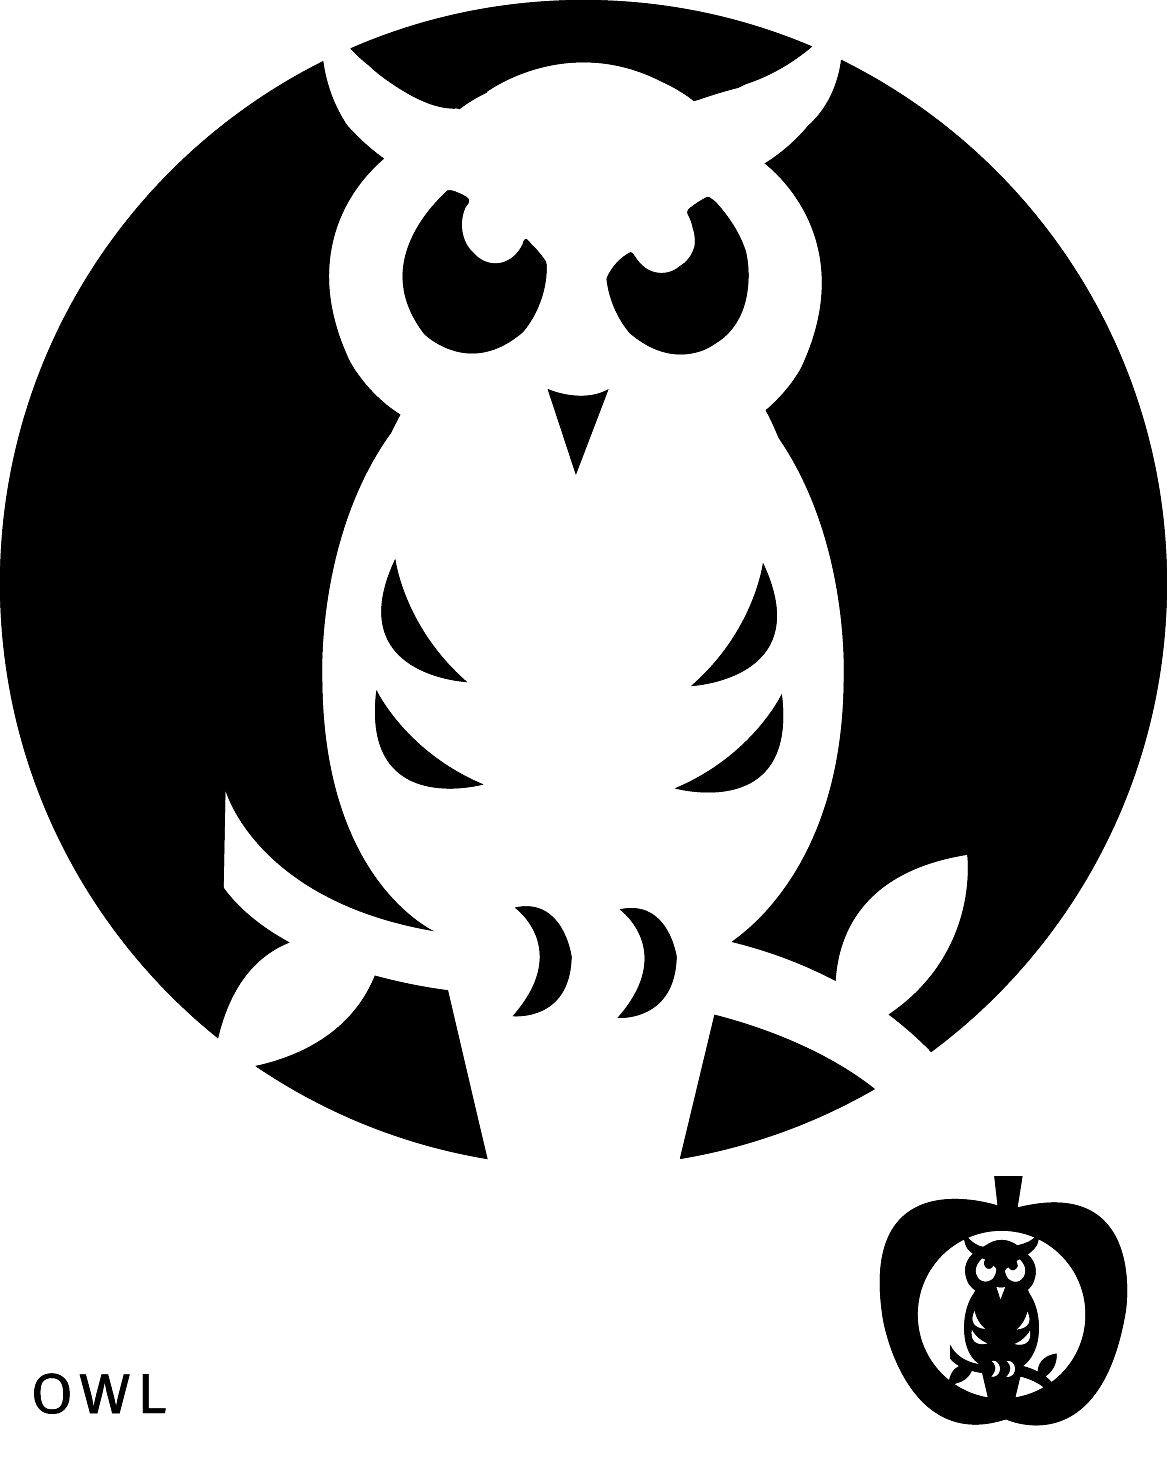 graphic relating to Owl Pumpkin Stencil Printable referred to as Easiest Visuals Of Adorable Owl Pumpkin Carving Template Printable